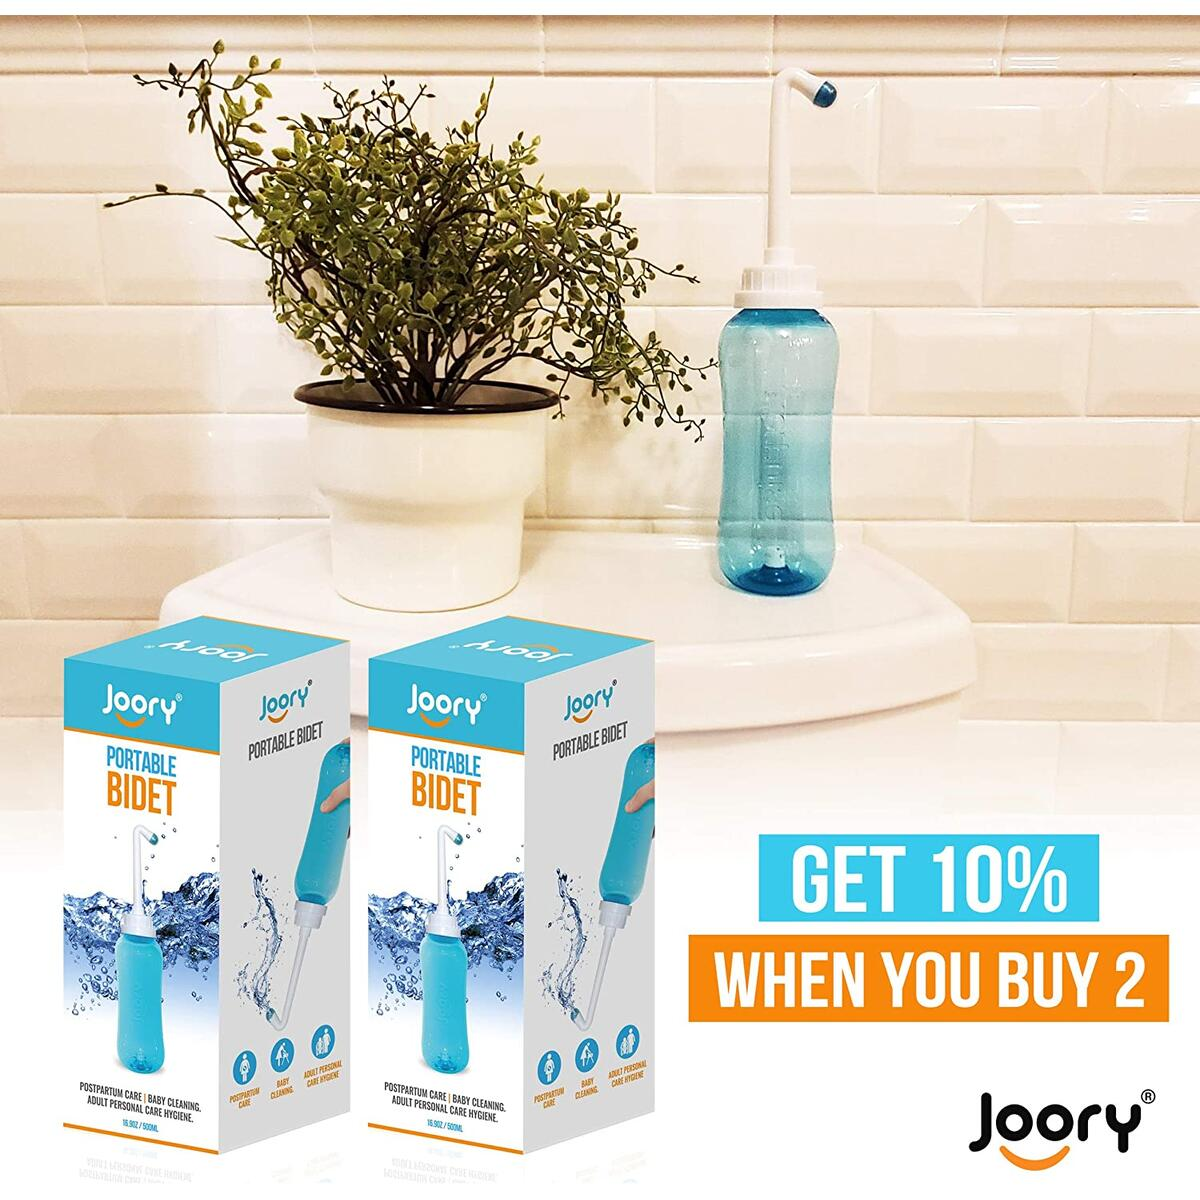 JOORY Peri Bottle Postpartum Handheld Bidet – Gently Cleanse After Childbirth Without Toilet Paper - 500ml Perineal Spray Bottle with 2 Interchangeable Nozzles, Travel Bag and Leakproof Cap